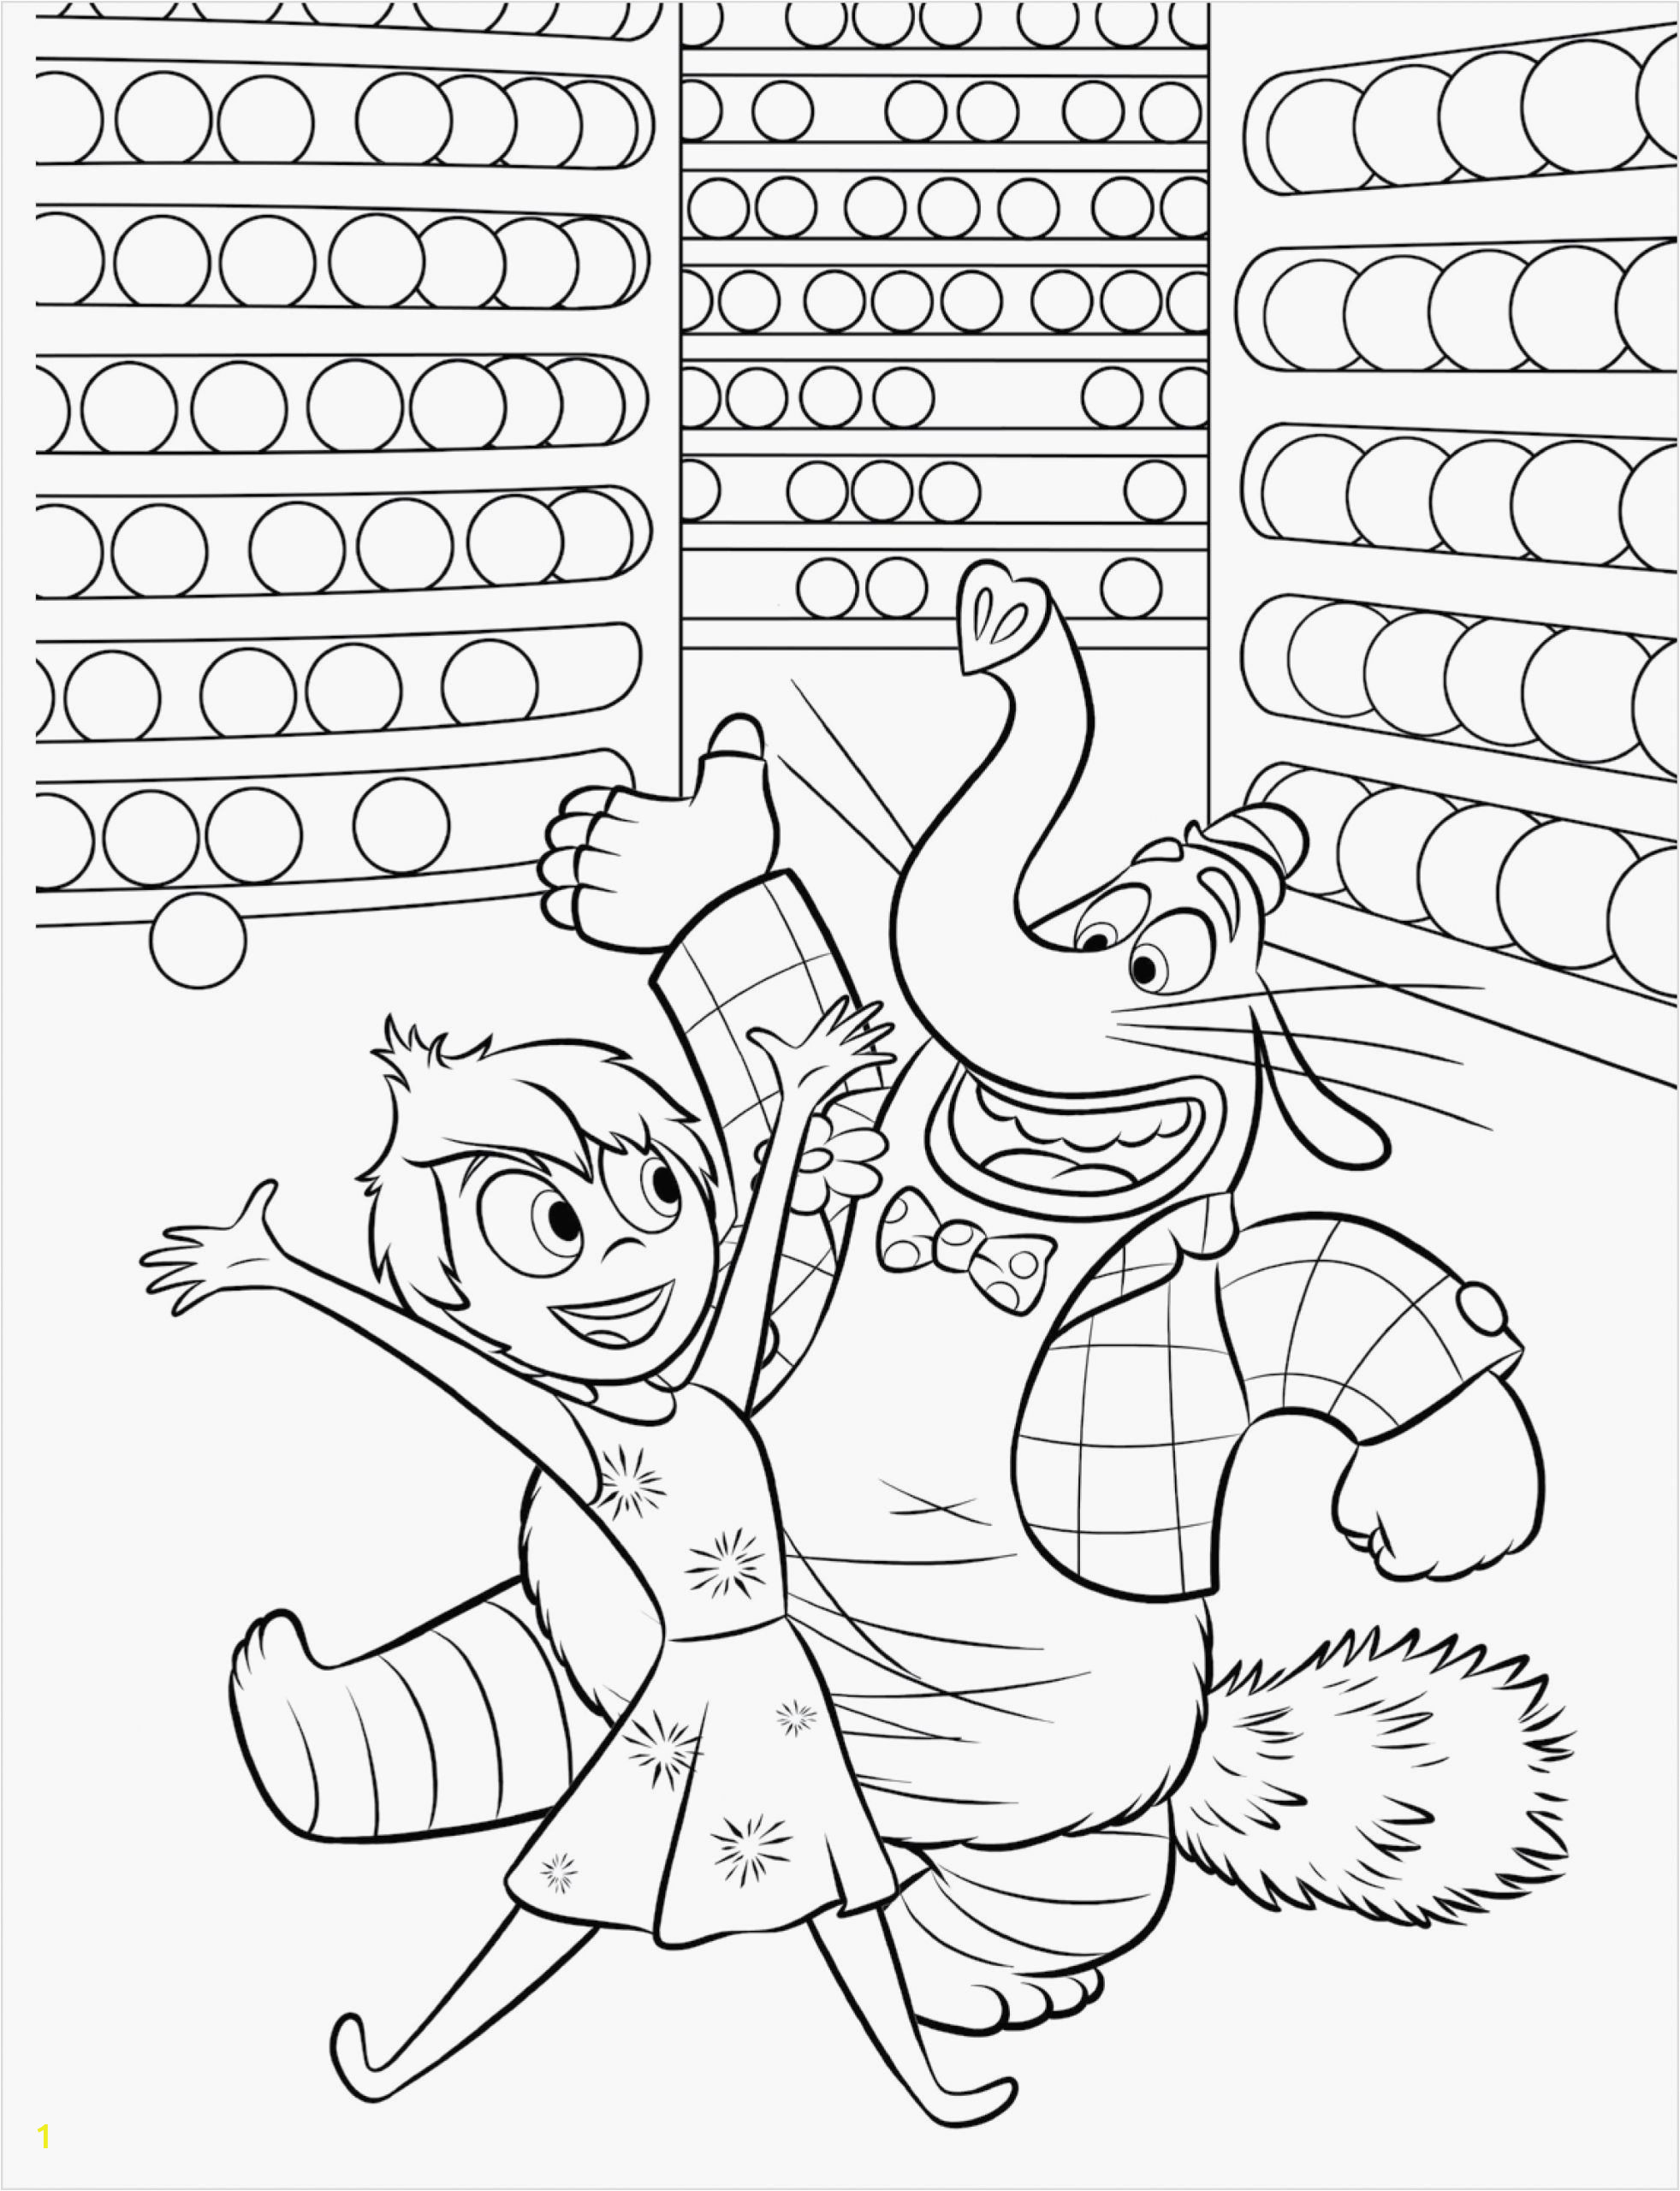 Disney Inside Out Coloring Pages Pin On Coloring Pages